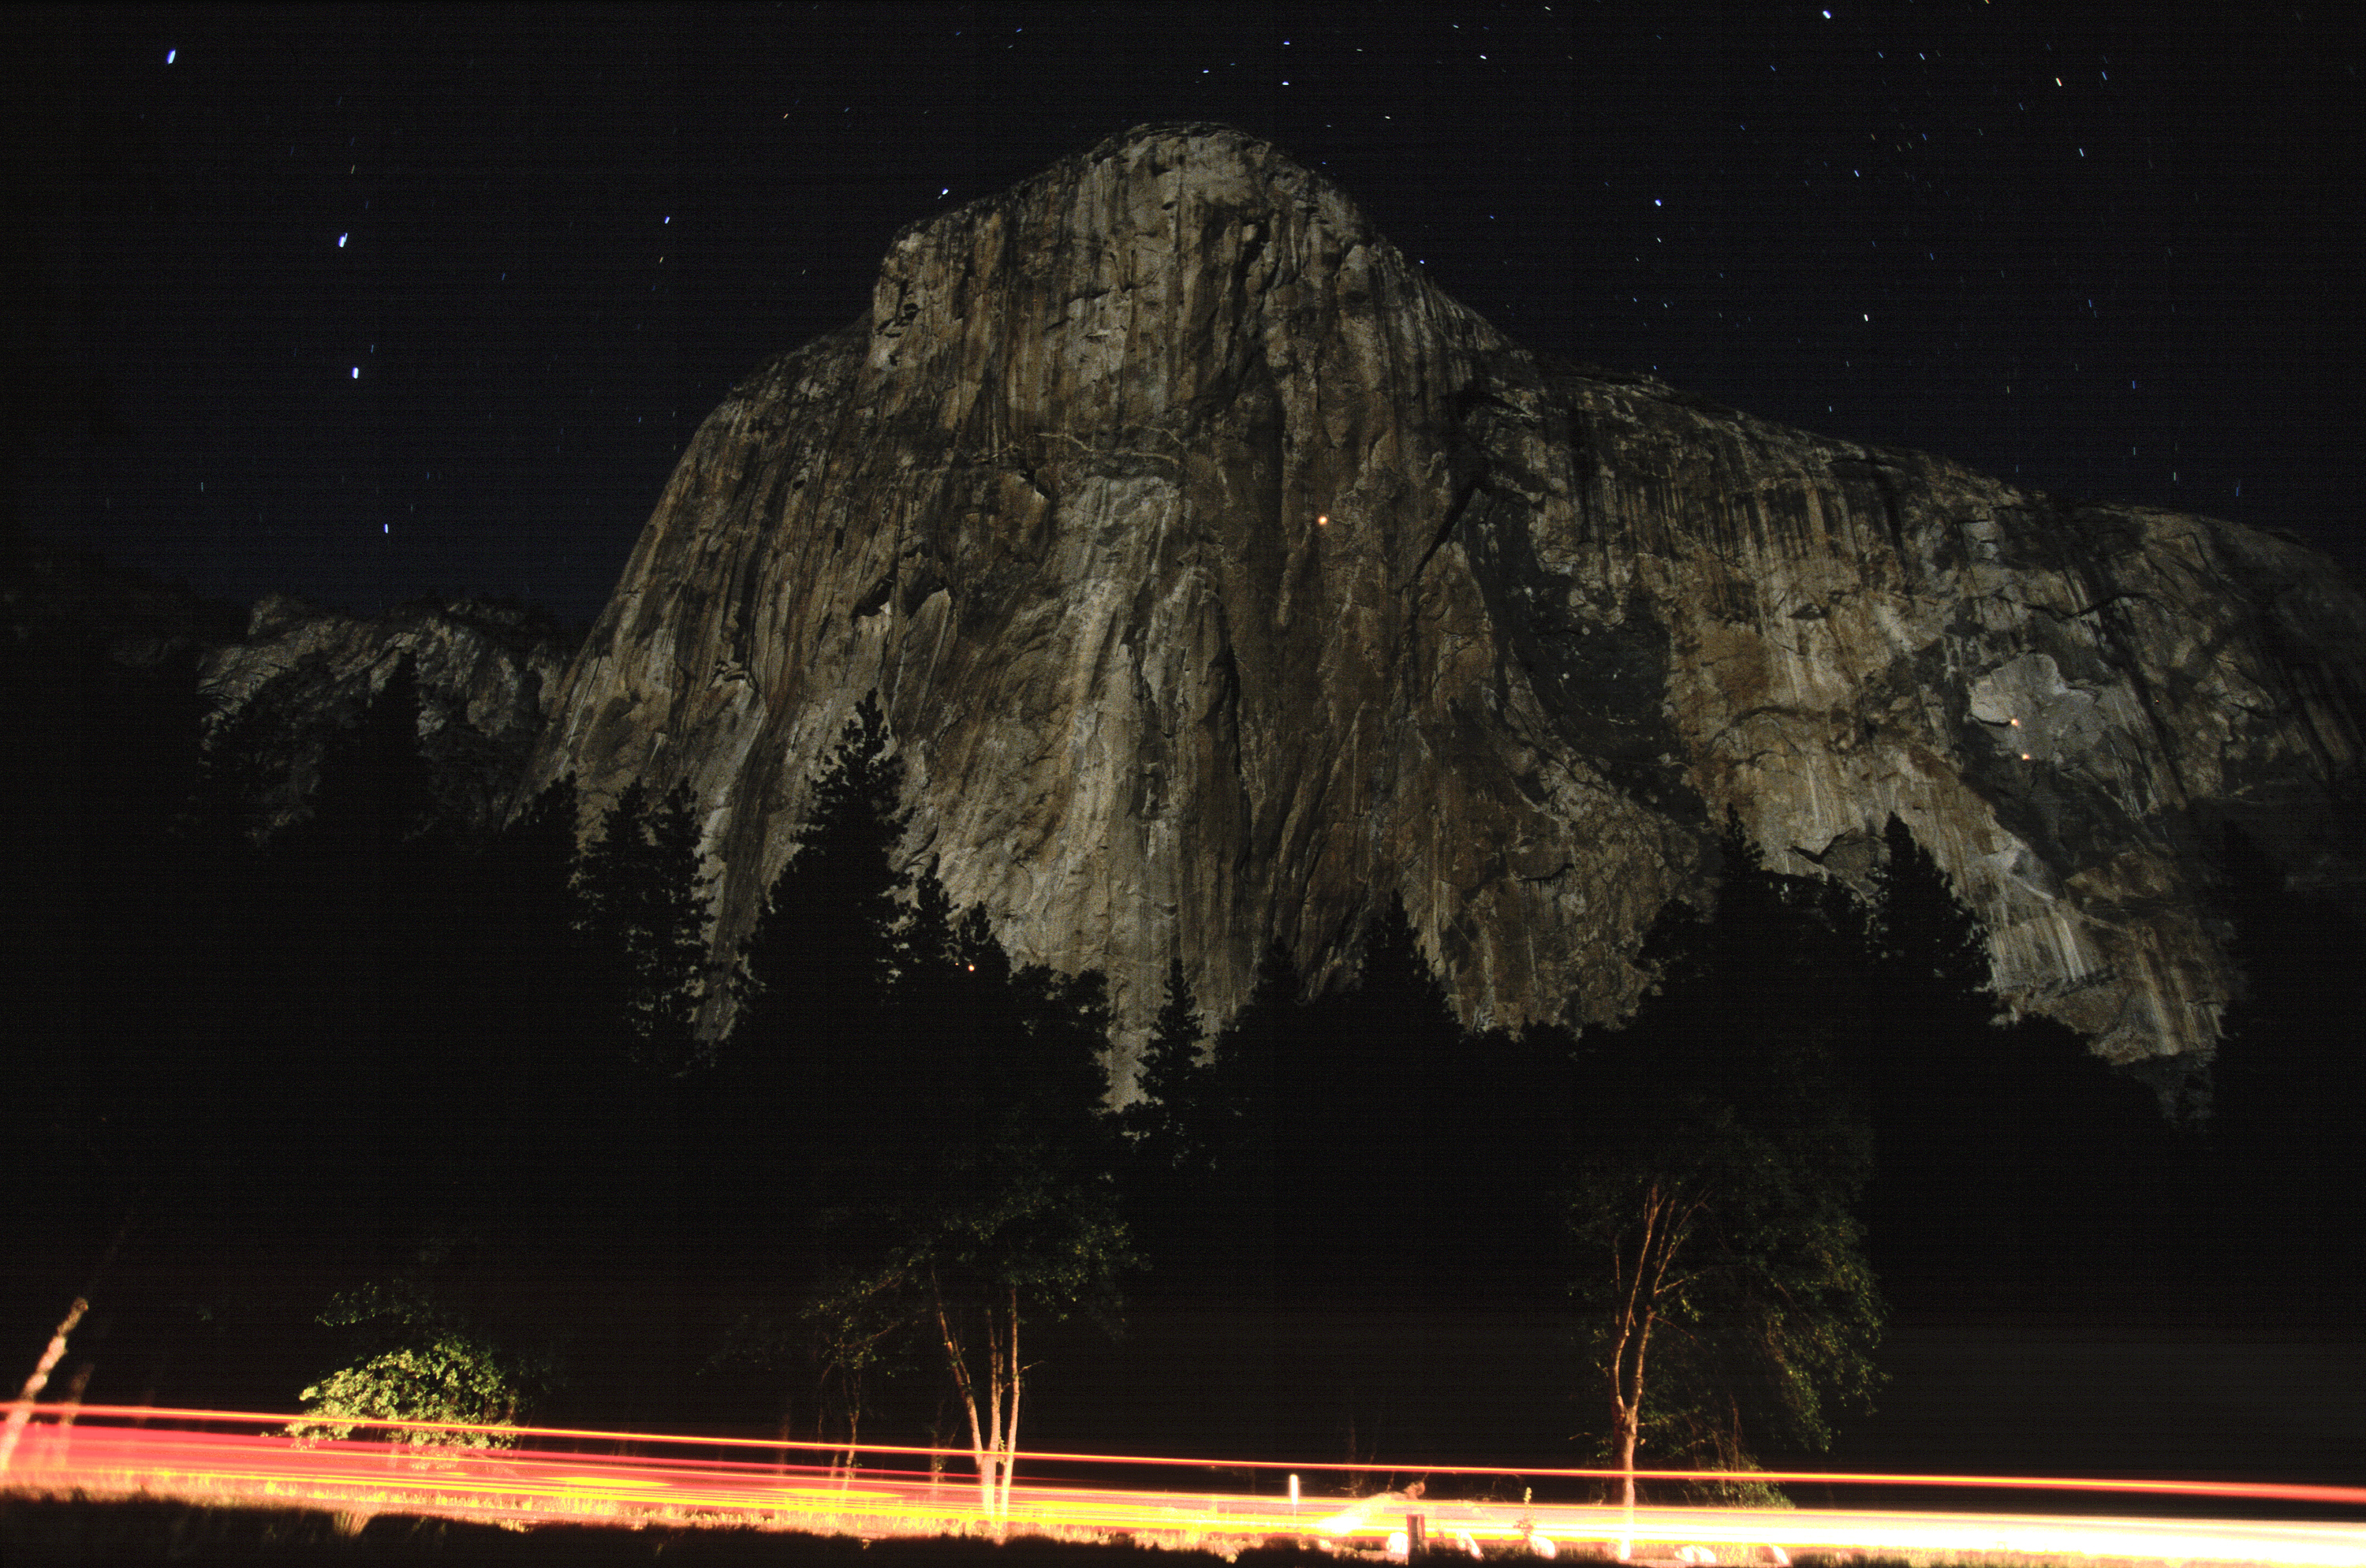 Yosemite Night Climbers